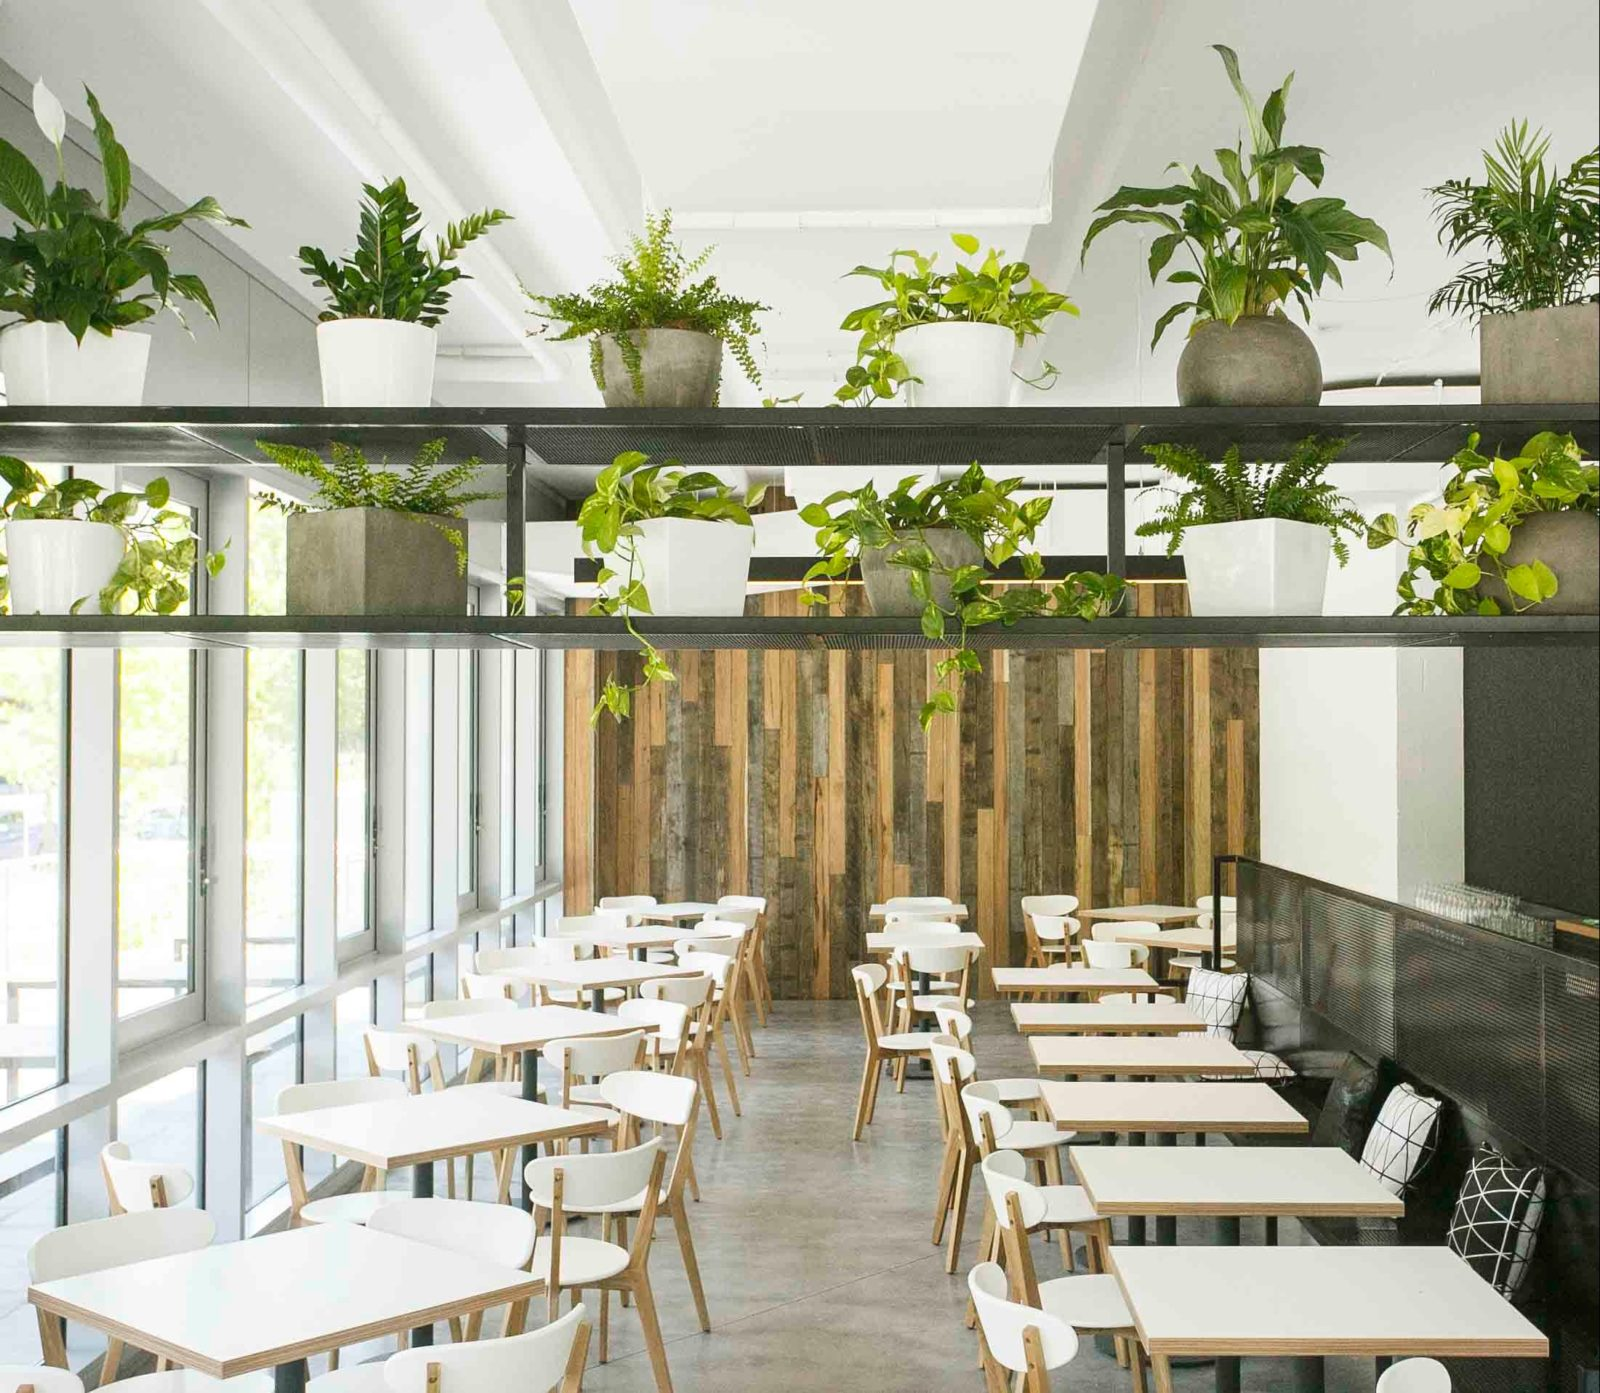 Light and airy cafe interior